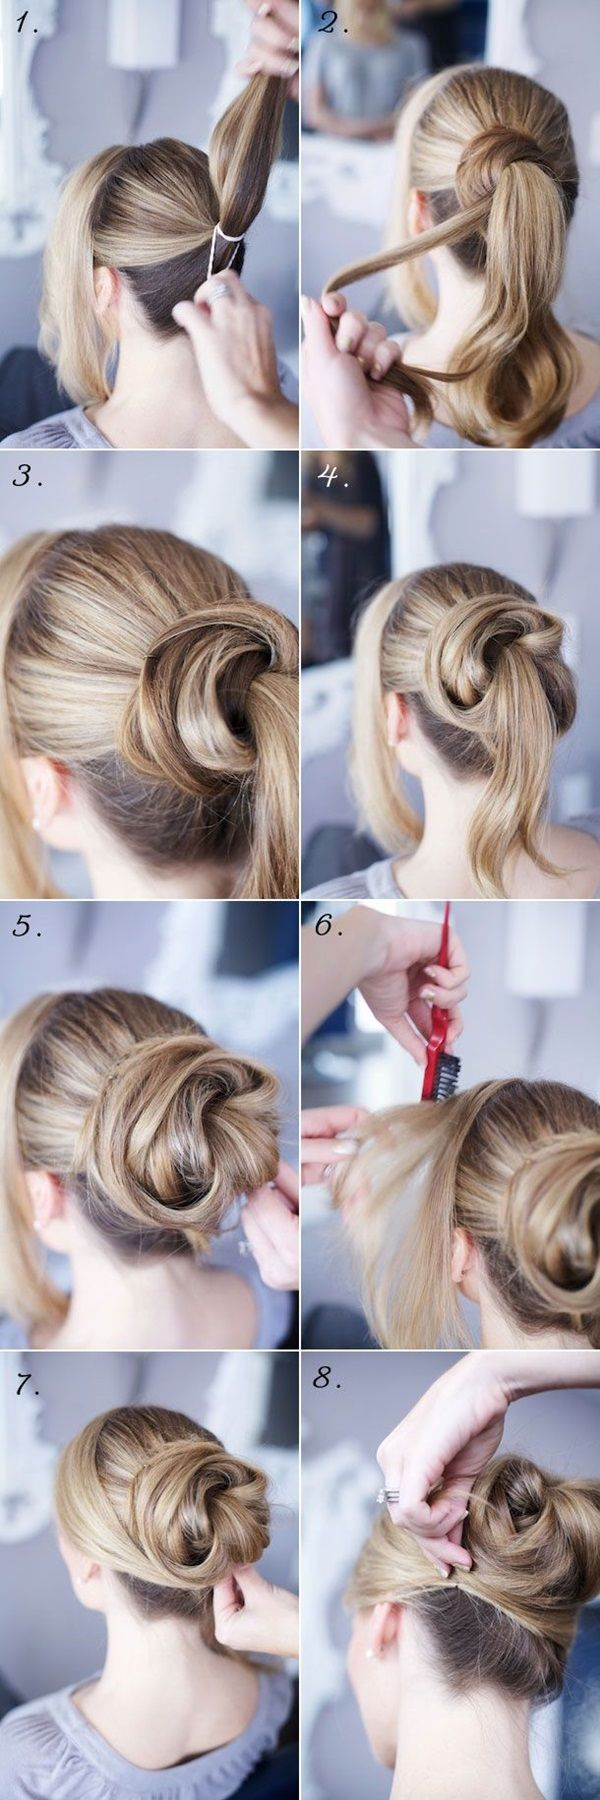 + 25 easy hairstyles 2018-2019 step by step 3